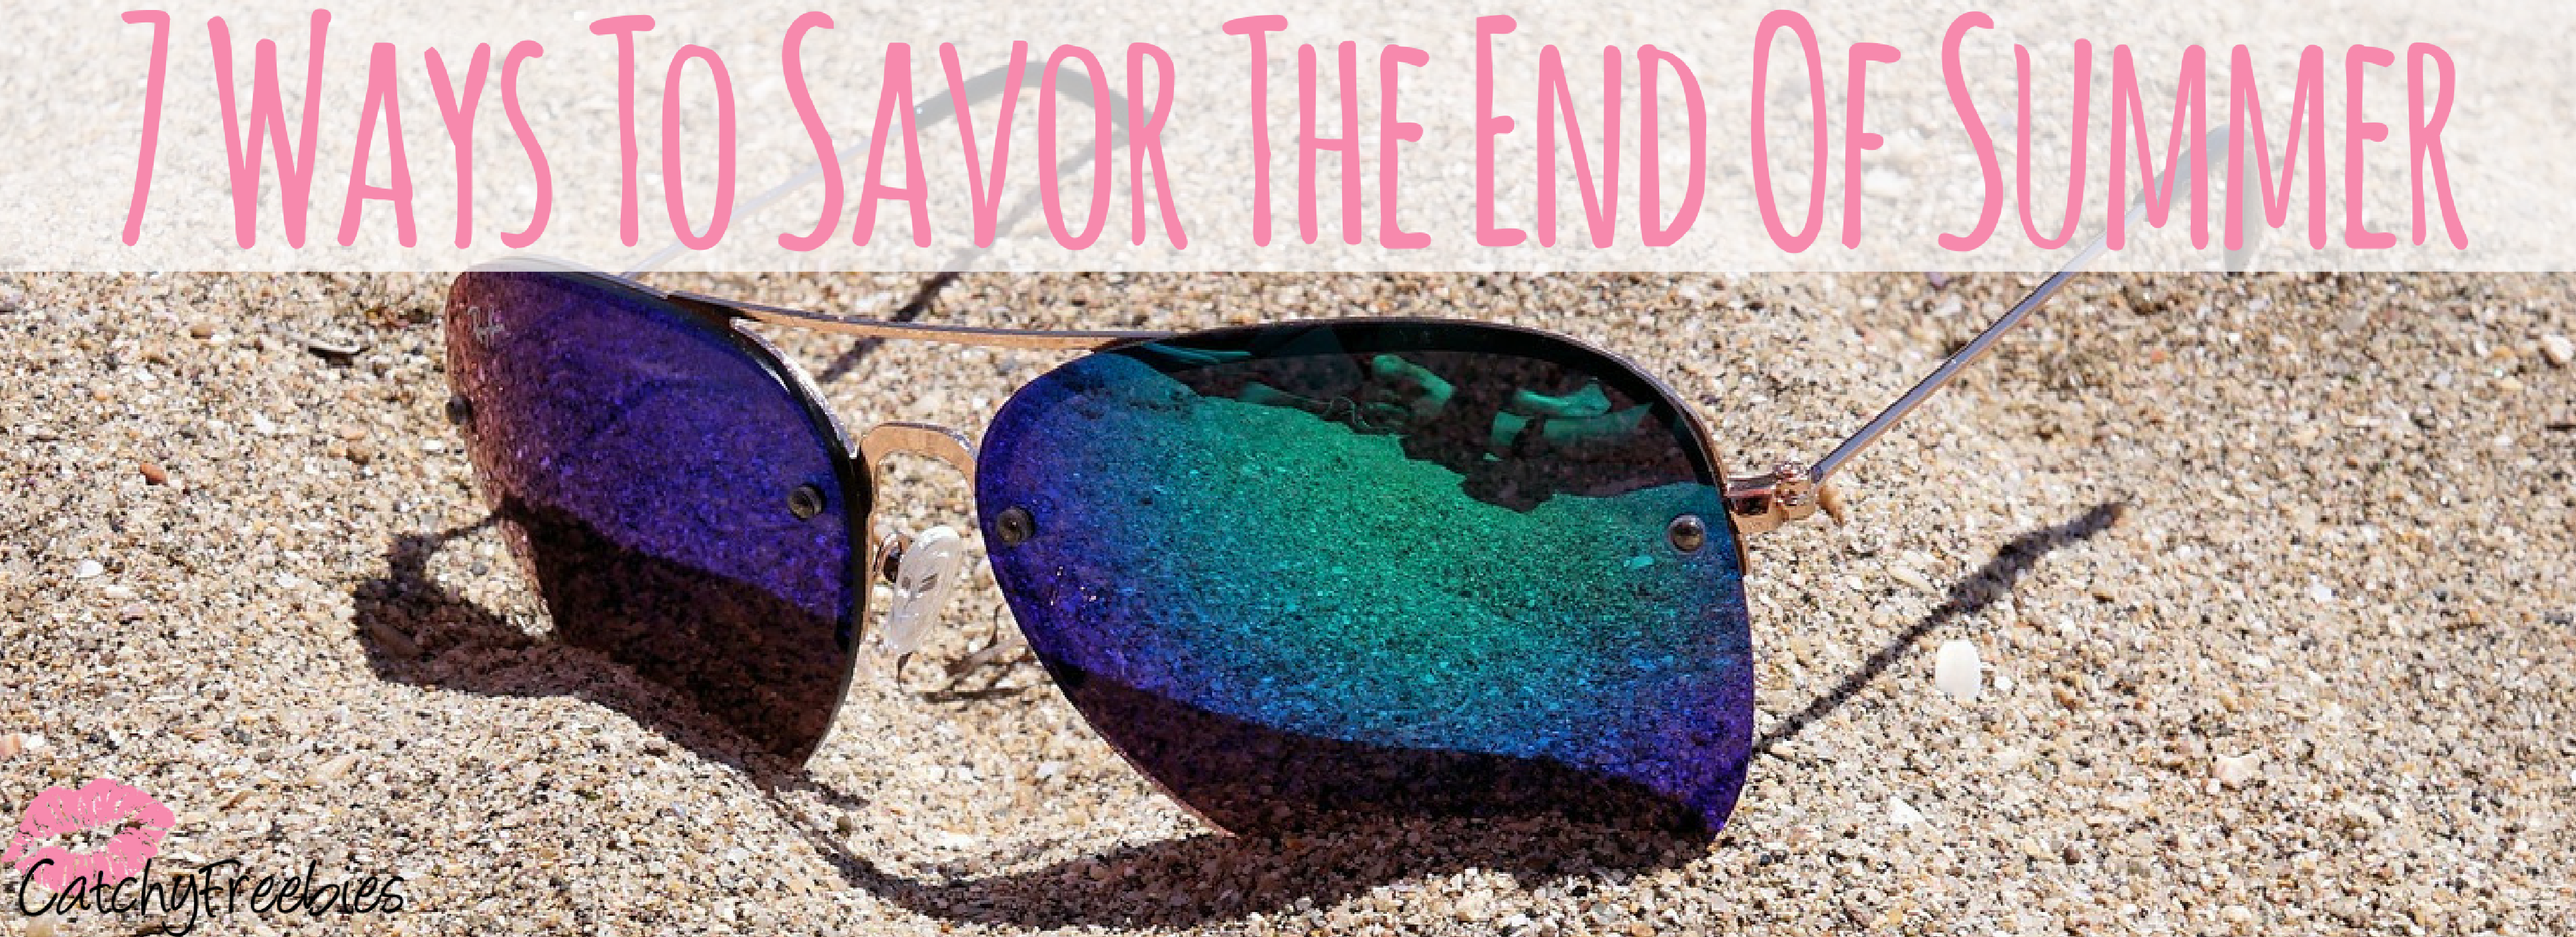 7 Ways To Savor The End Of Summer